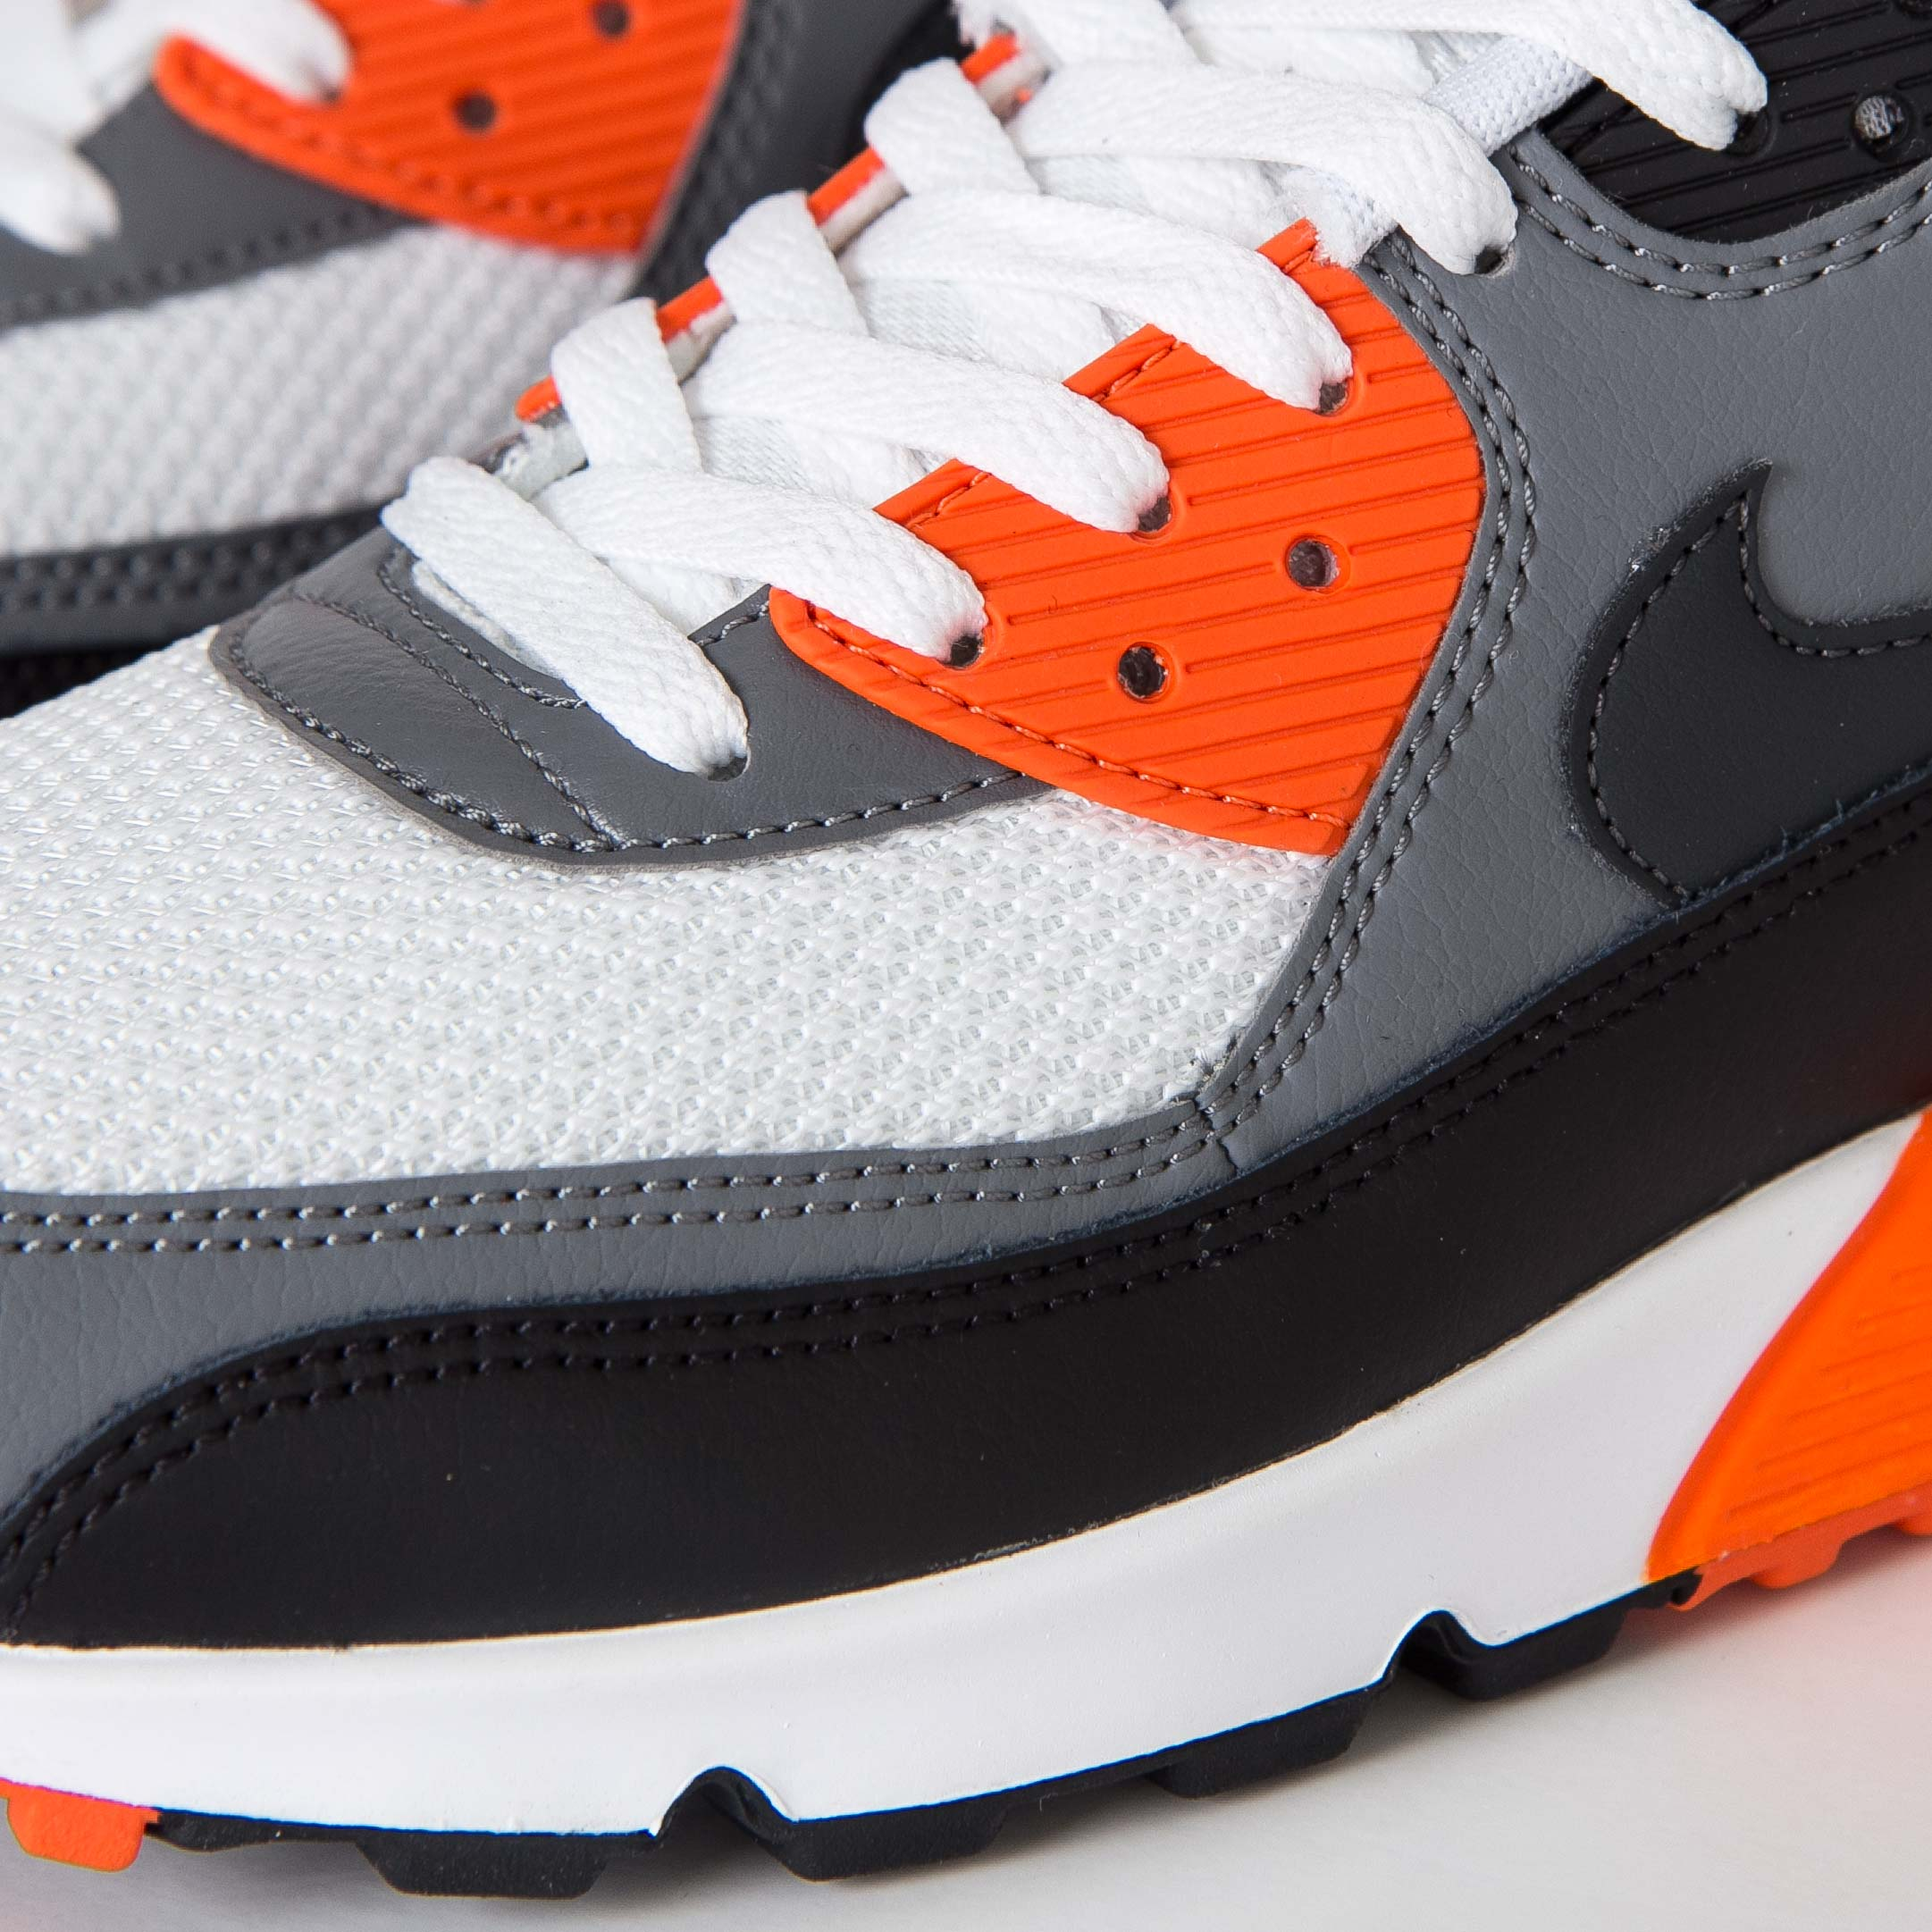 best website 9cce7 2c3c1 netherlands nike air max 90 essential 7432c f8d80